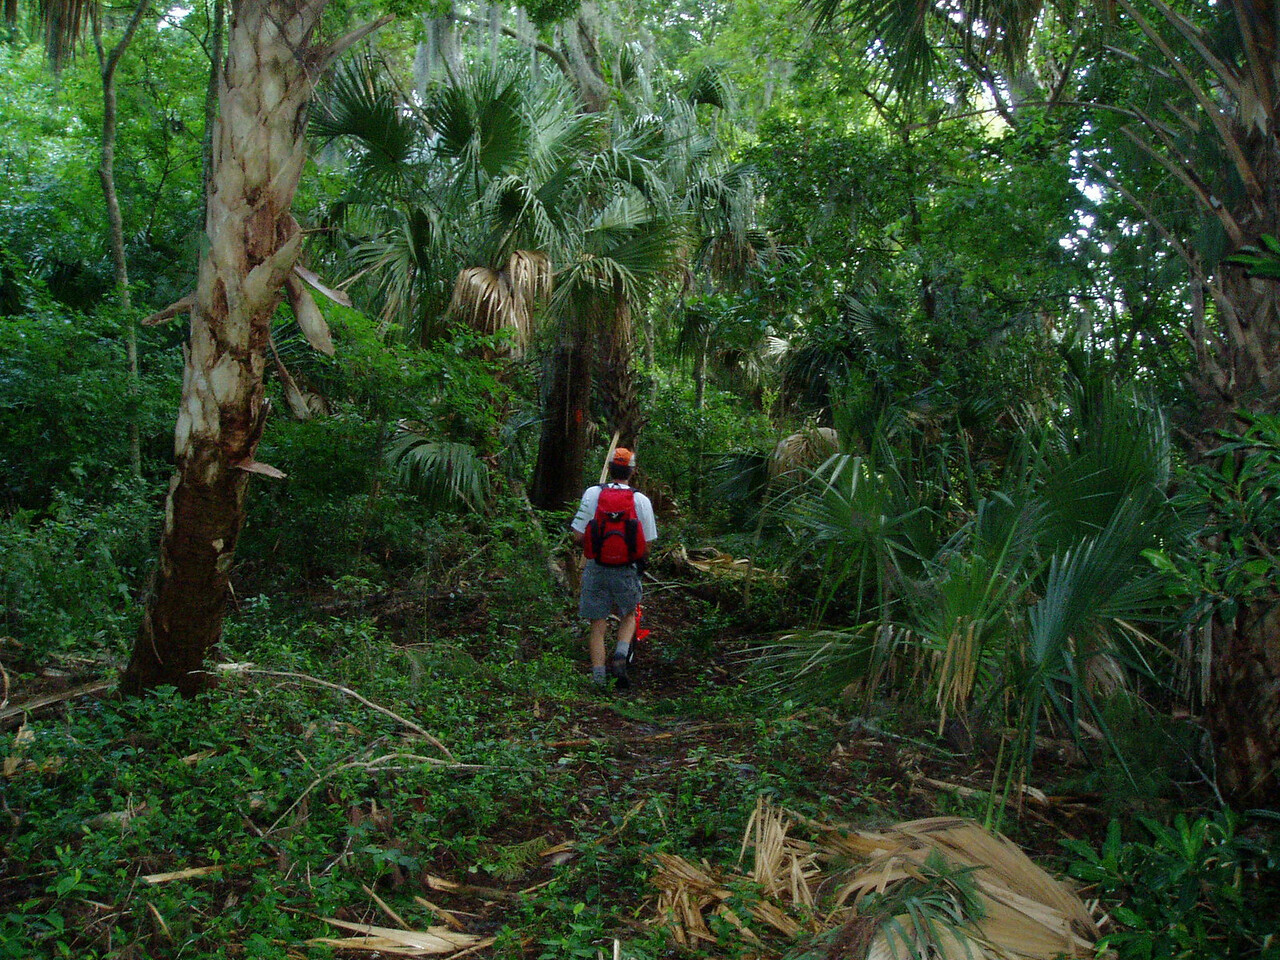 Rafael Sanchez Trail, Okeechobee Ridge Park<br /> Photo by Deb Blick